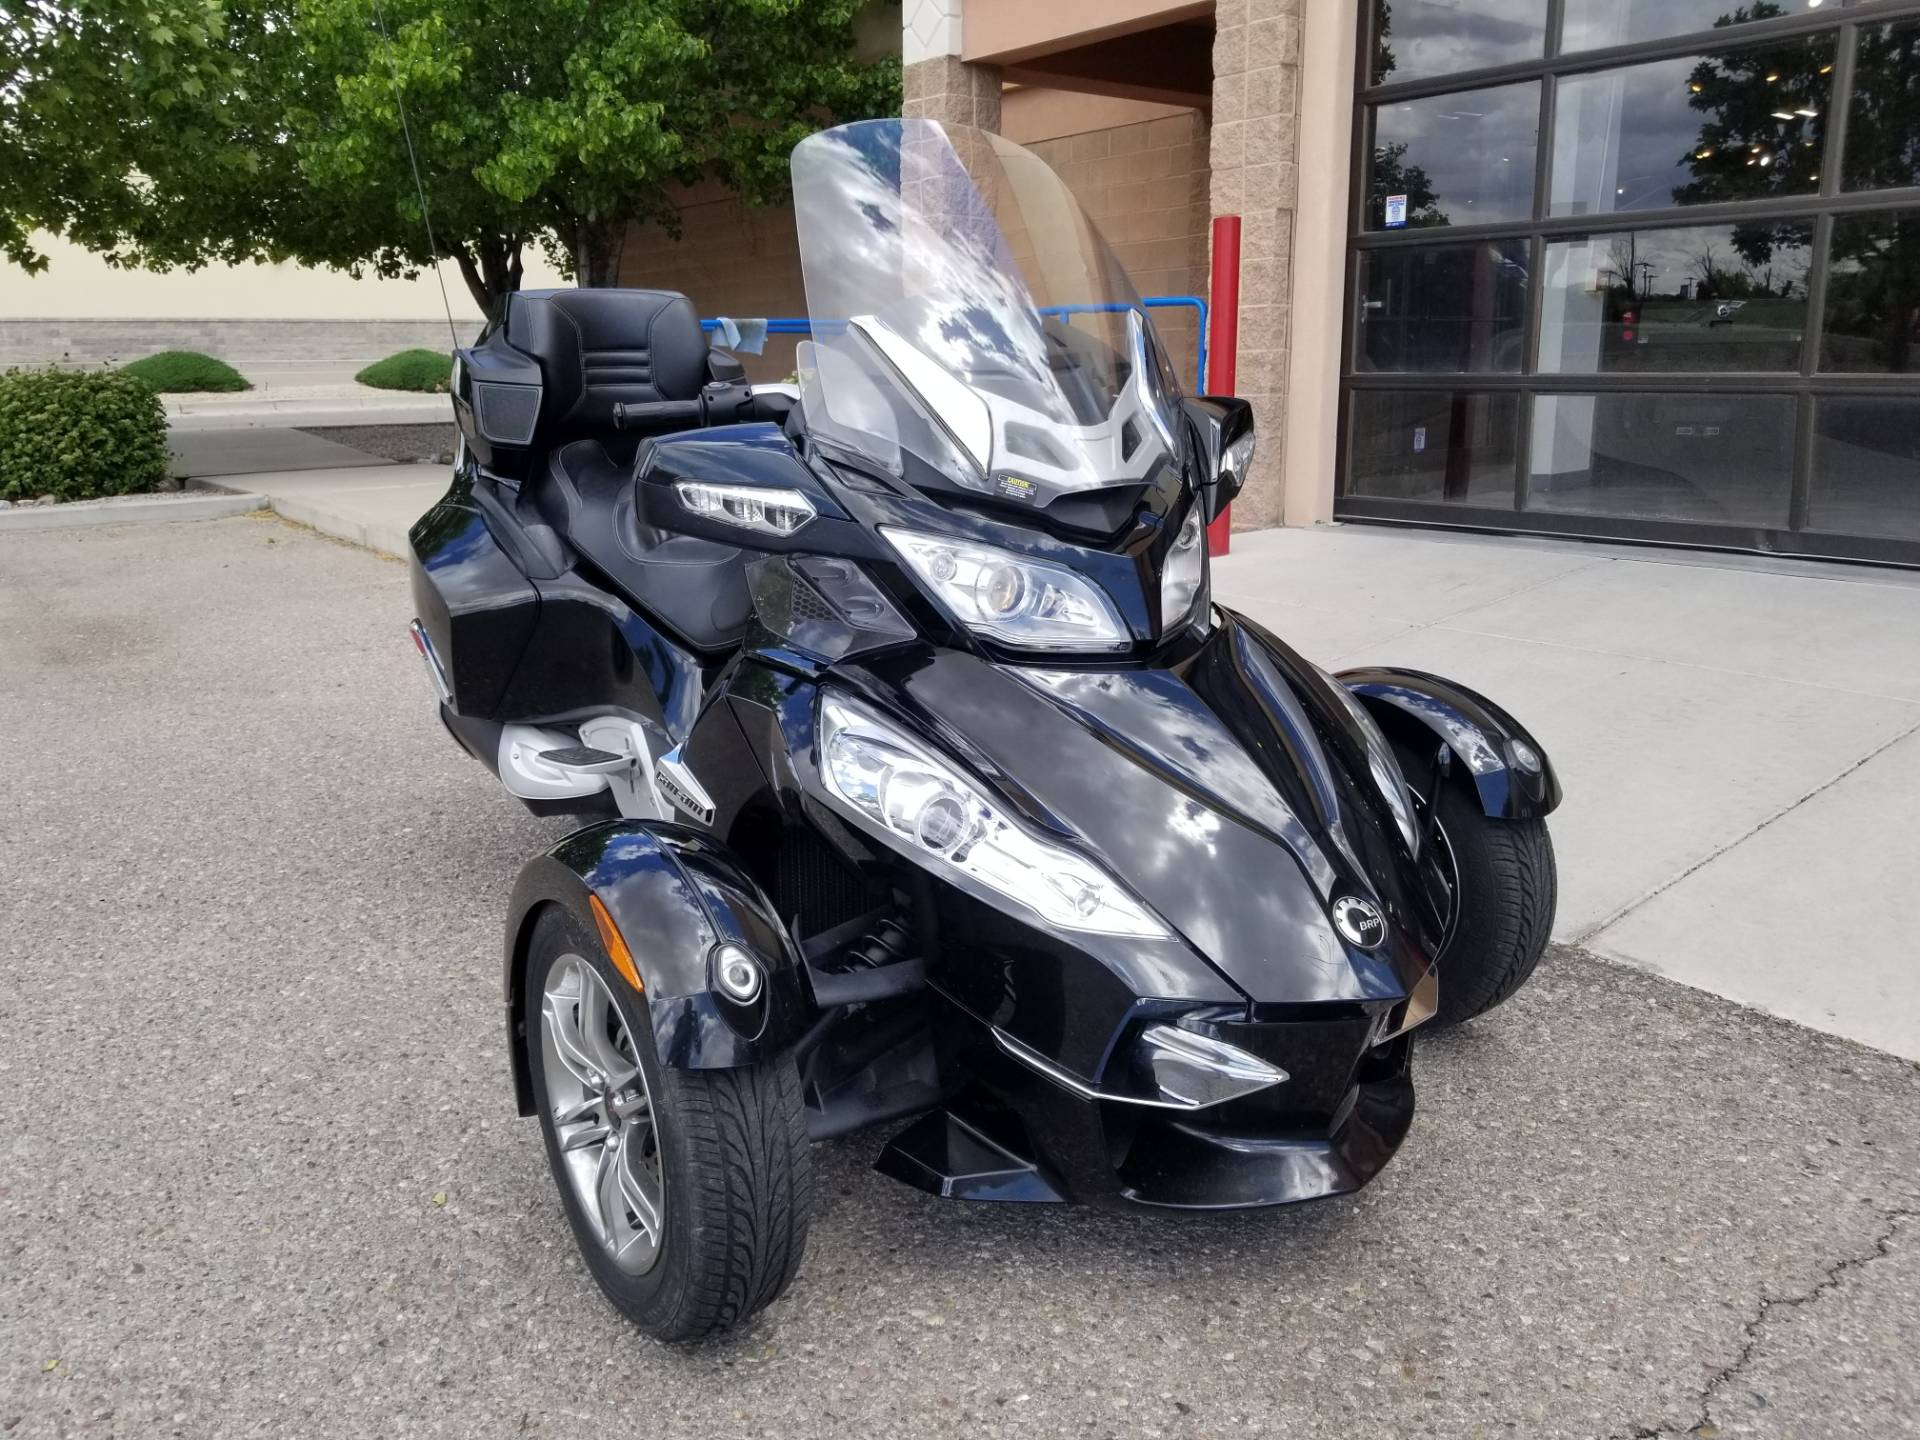 2010 Can-Am Spyder™ RT-S SE5 in Albuquerque, New Mexico - Photo 5